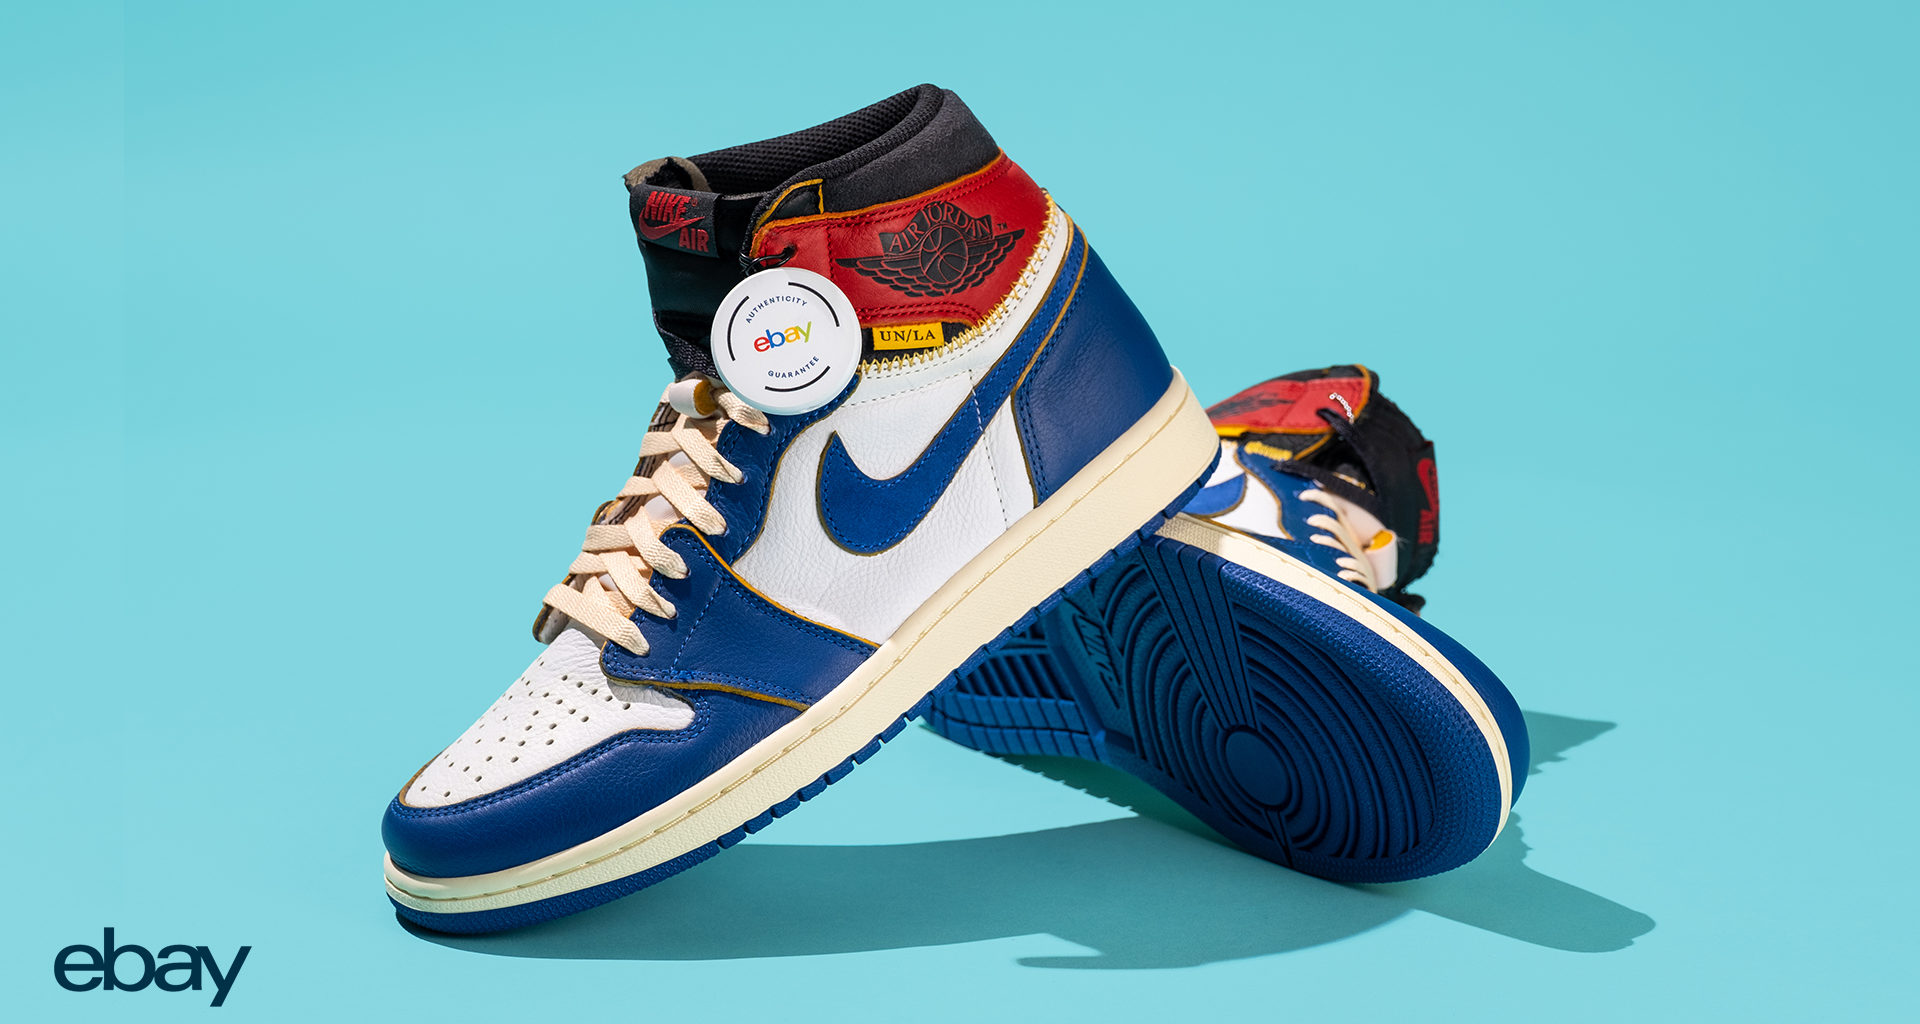 eBay is launching sneaker authentication service from 25th October